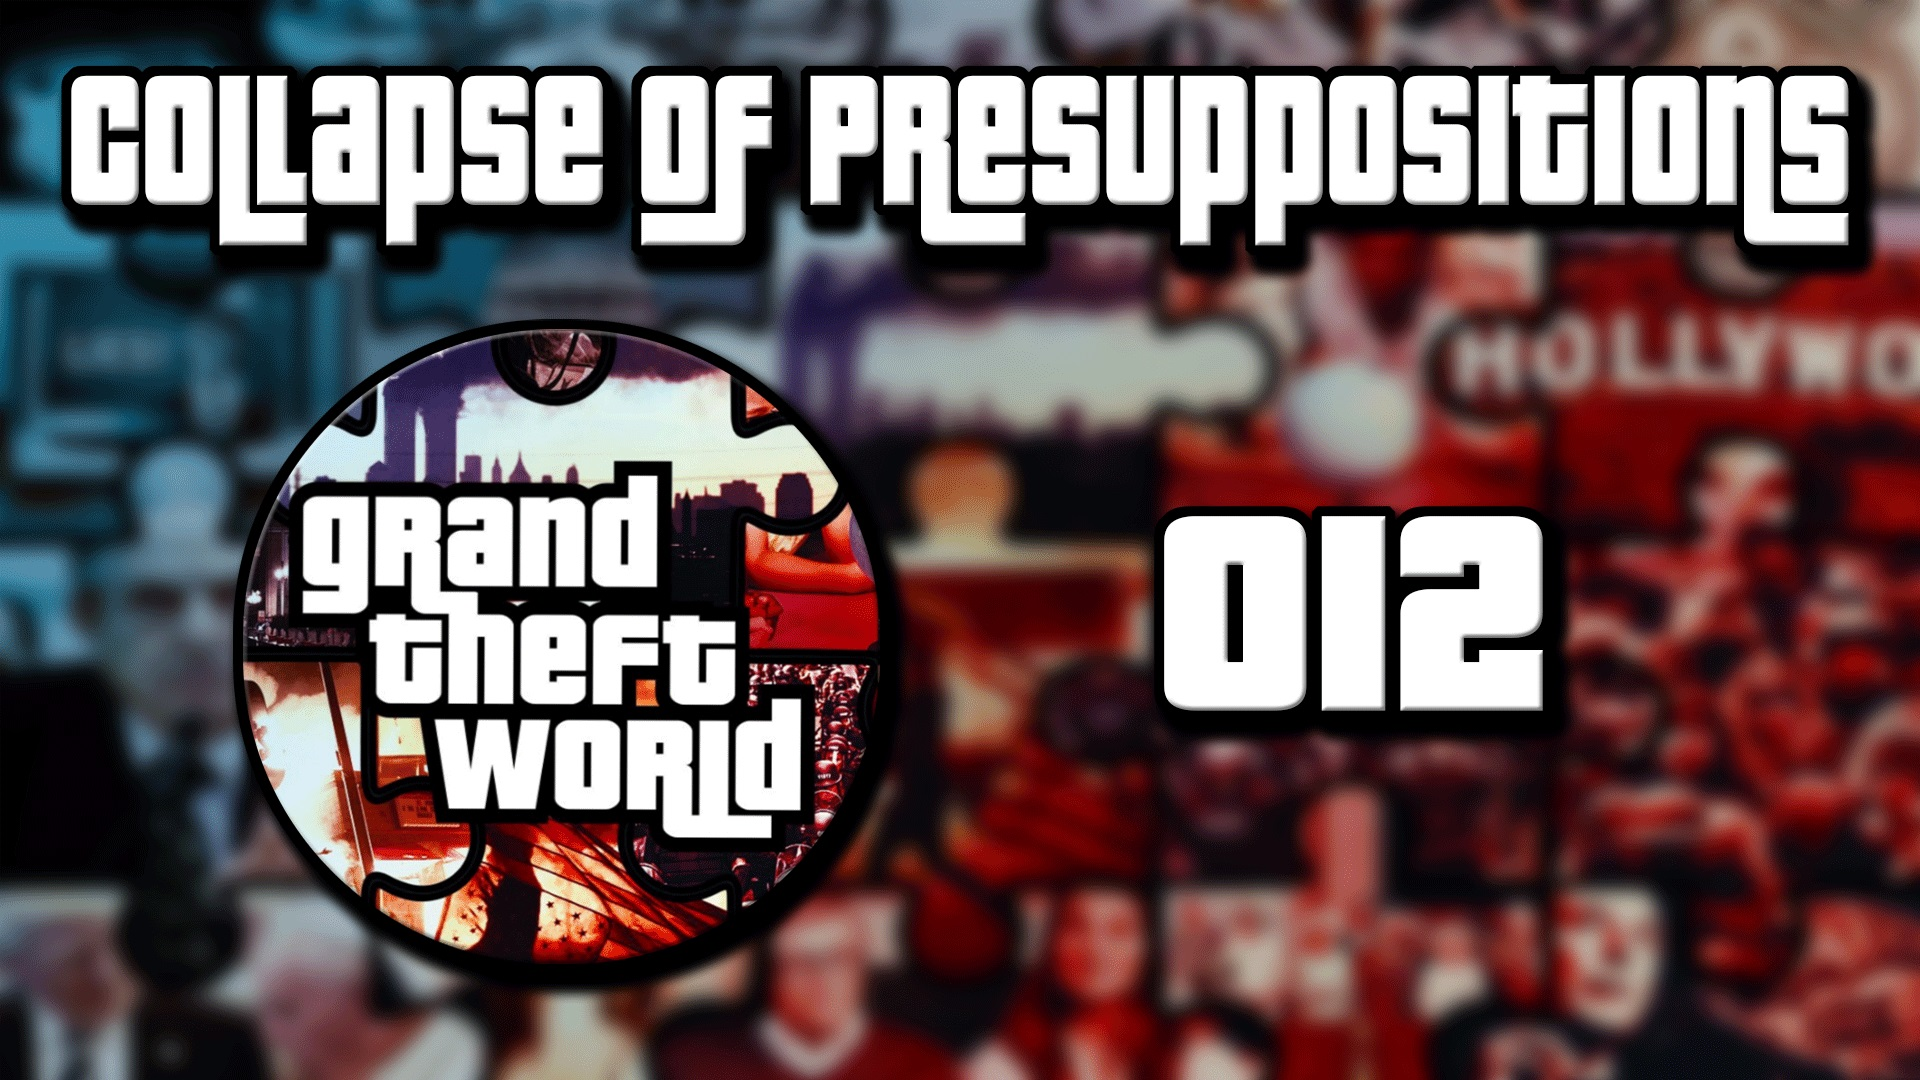 Grand Theft World Podcast 012   The Collapse of Presuppositions